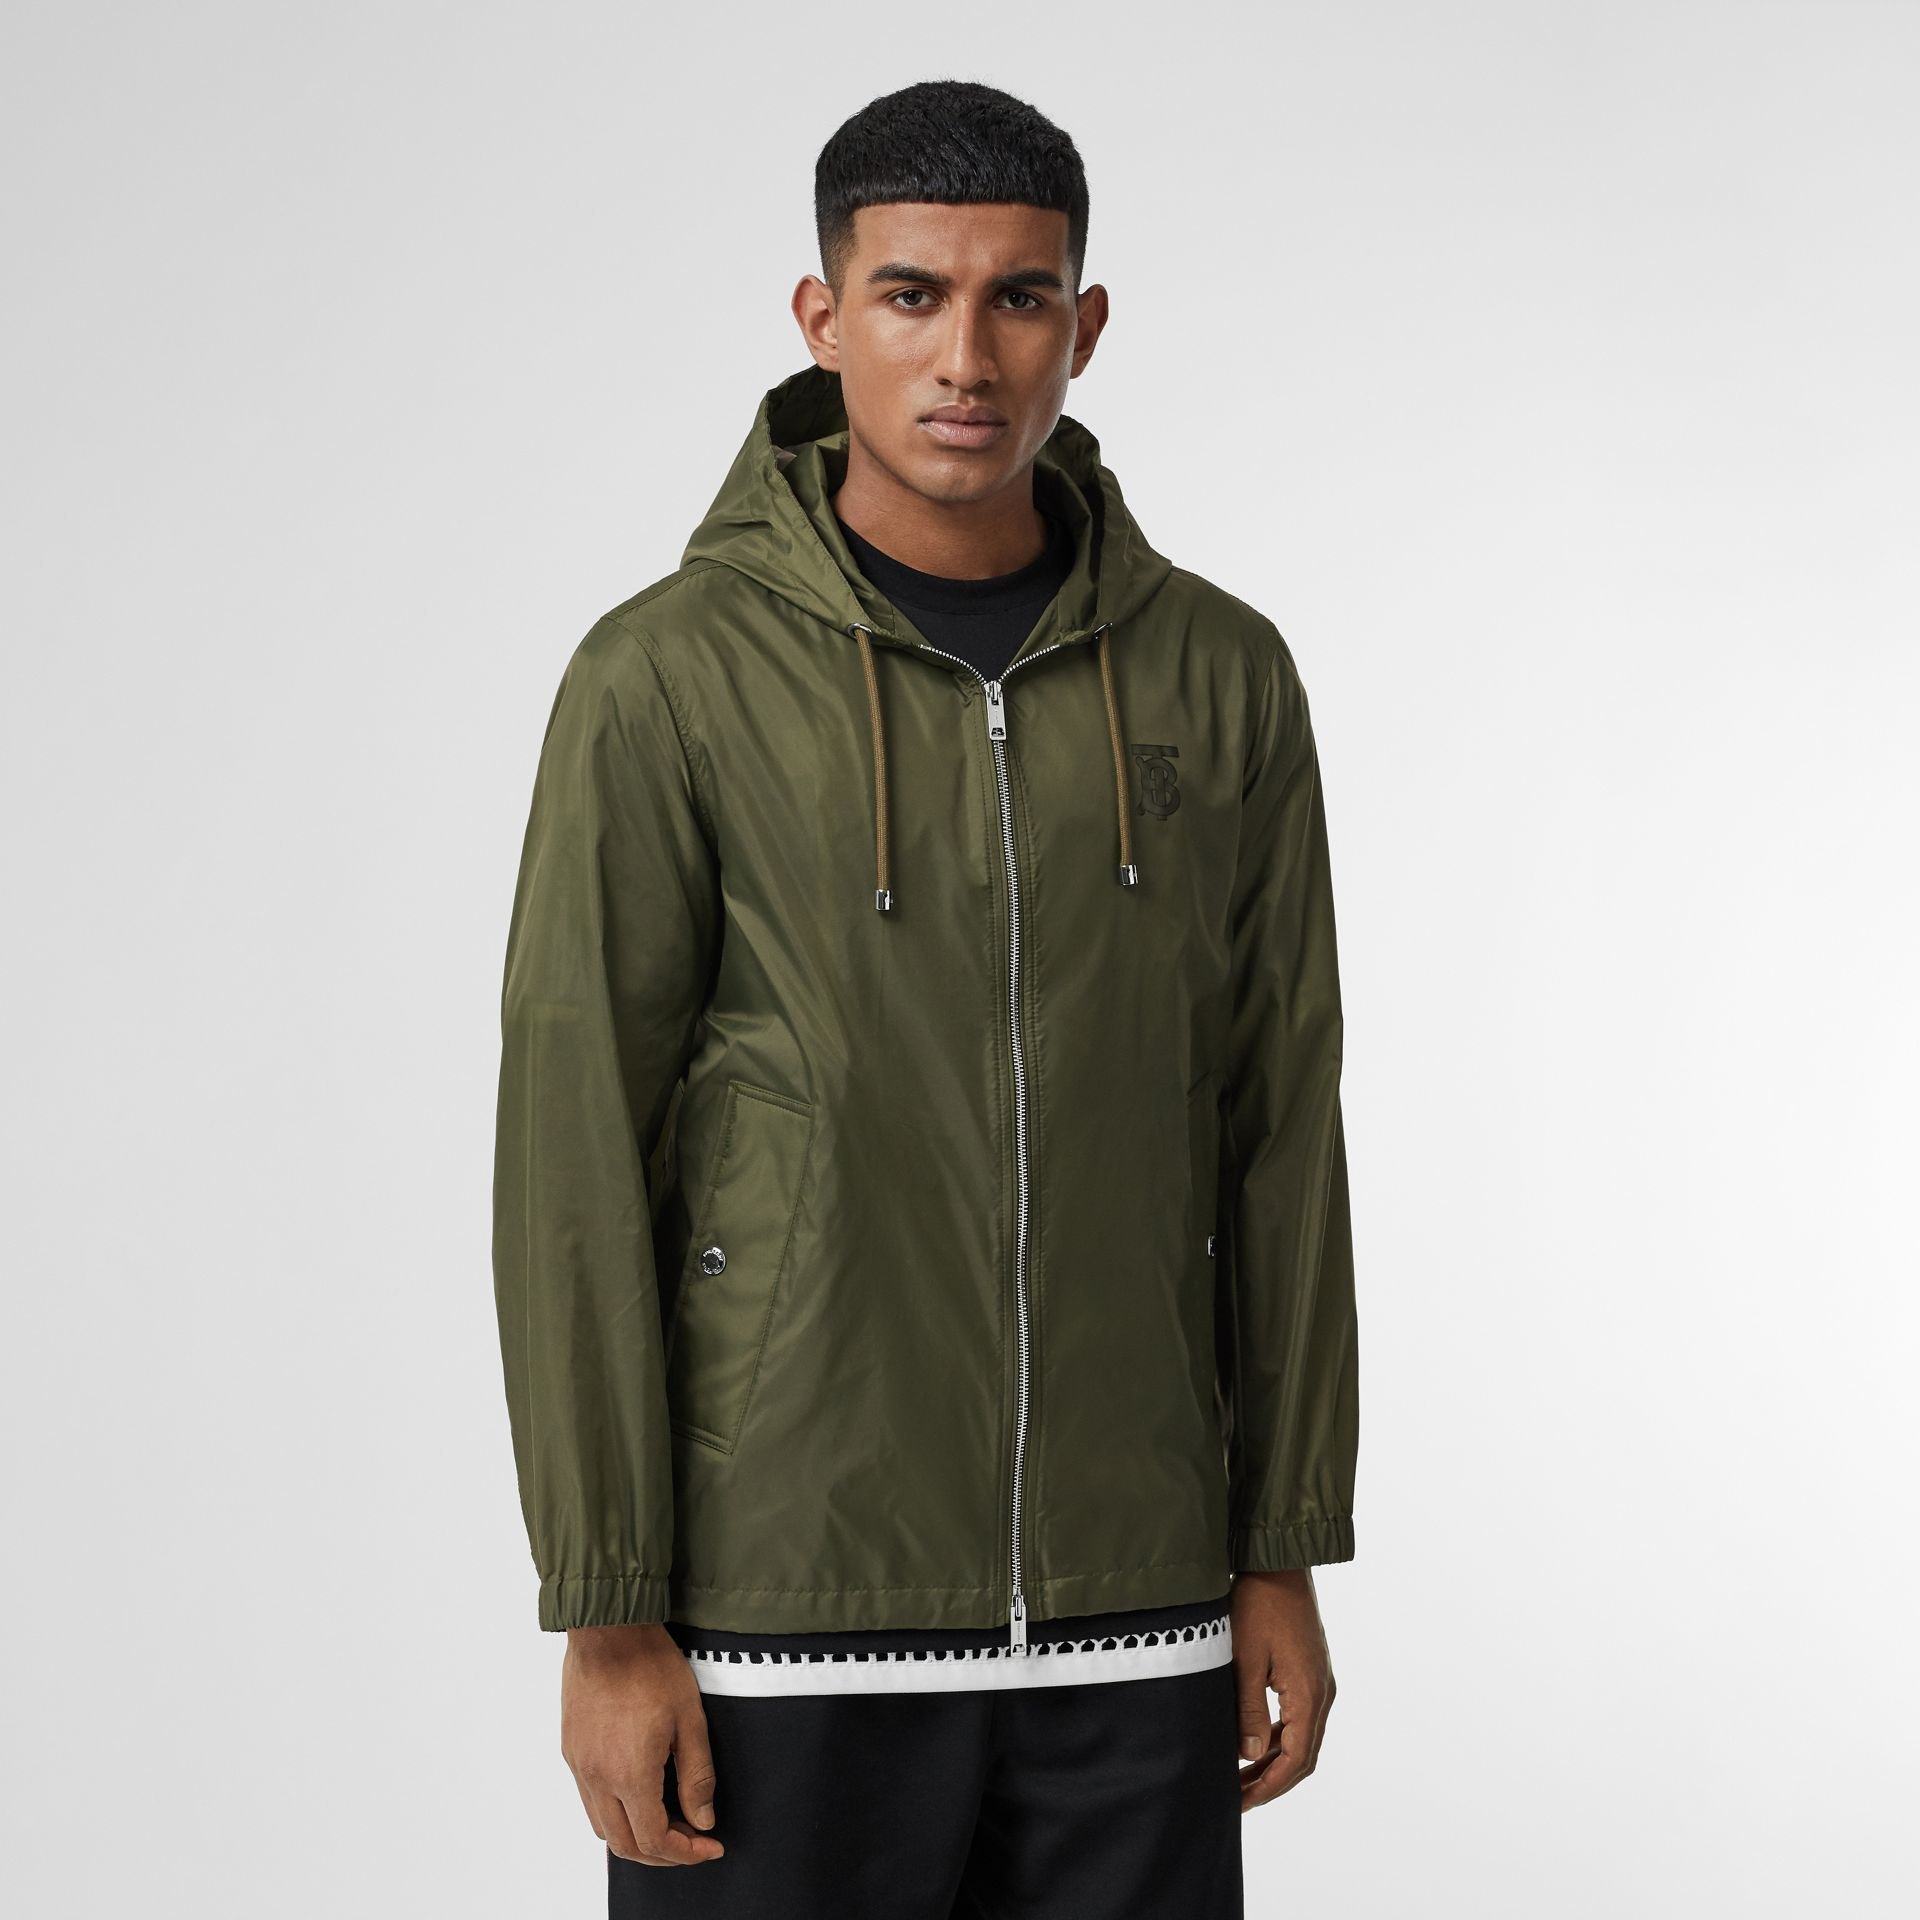 Monogram Motif Lightweight Hooded Jacket in Light Olive - Men | Burberry - gallery image 5